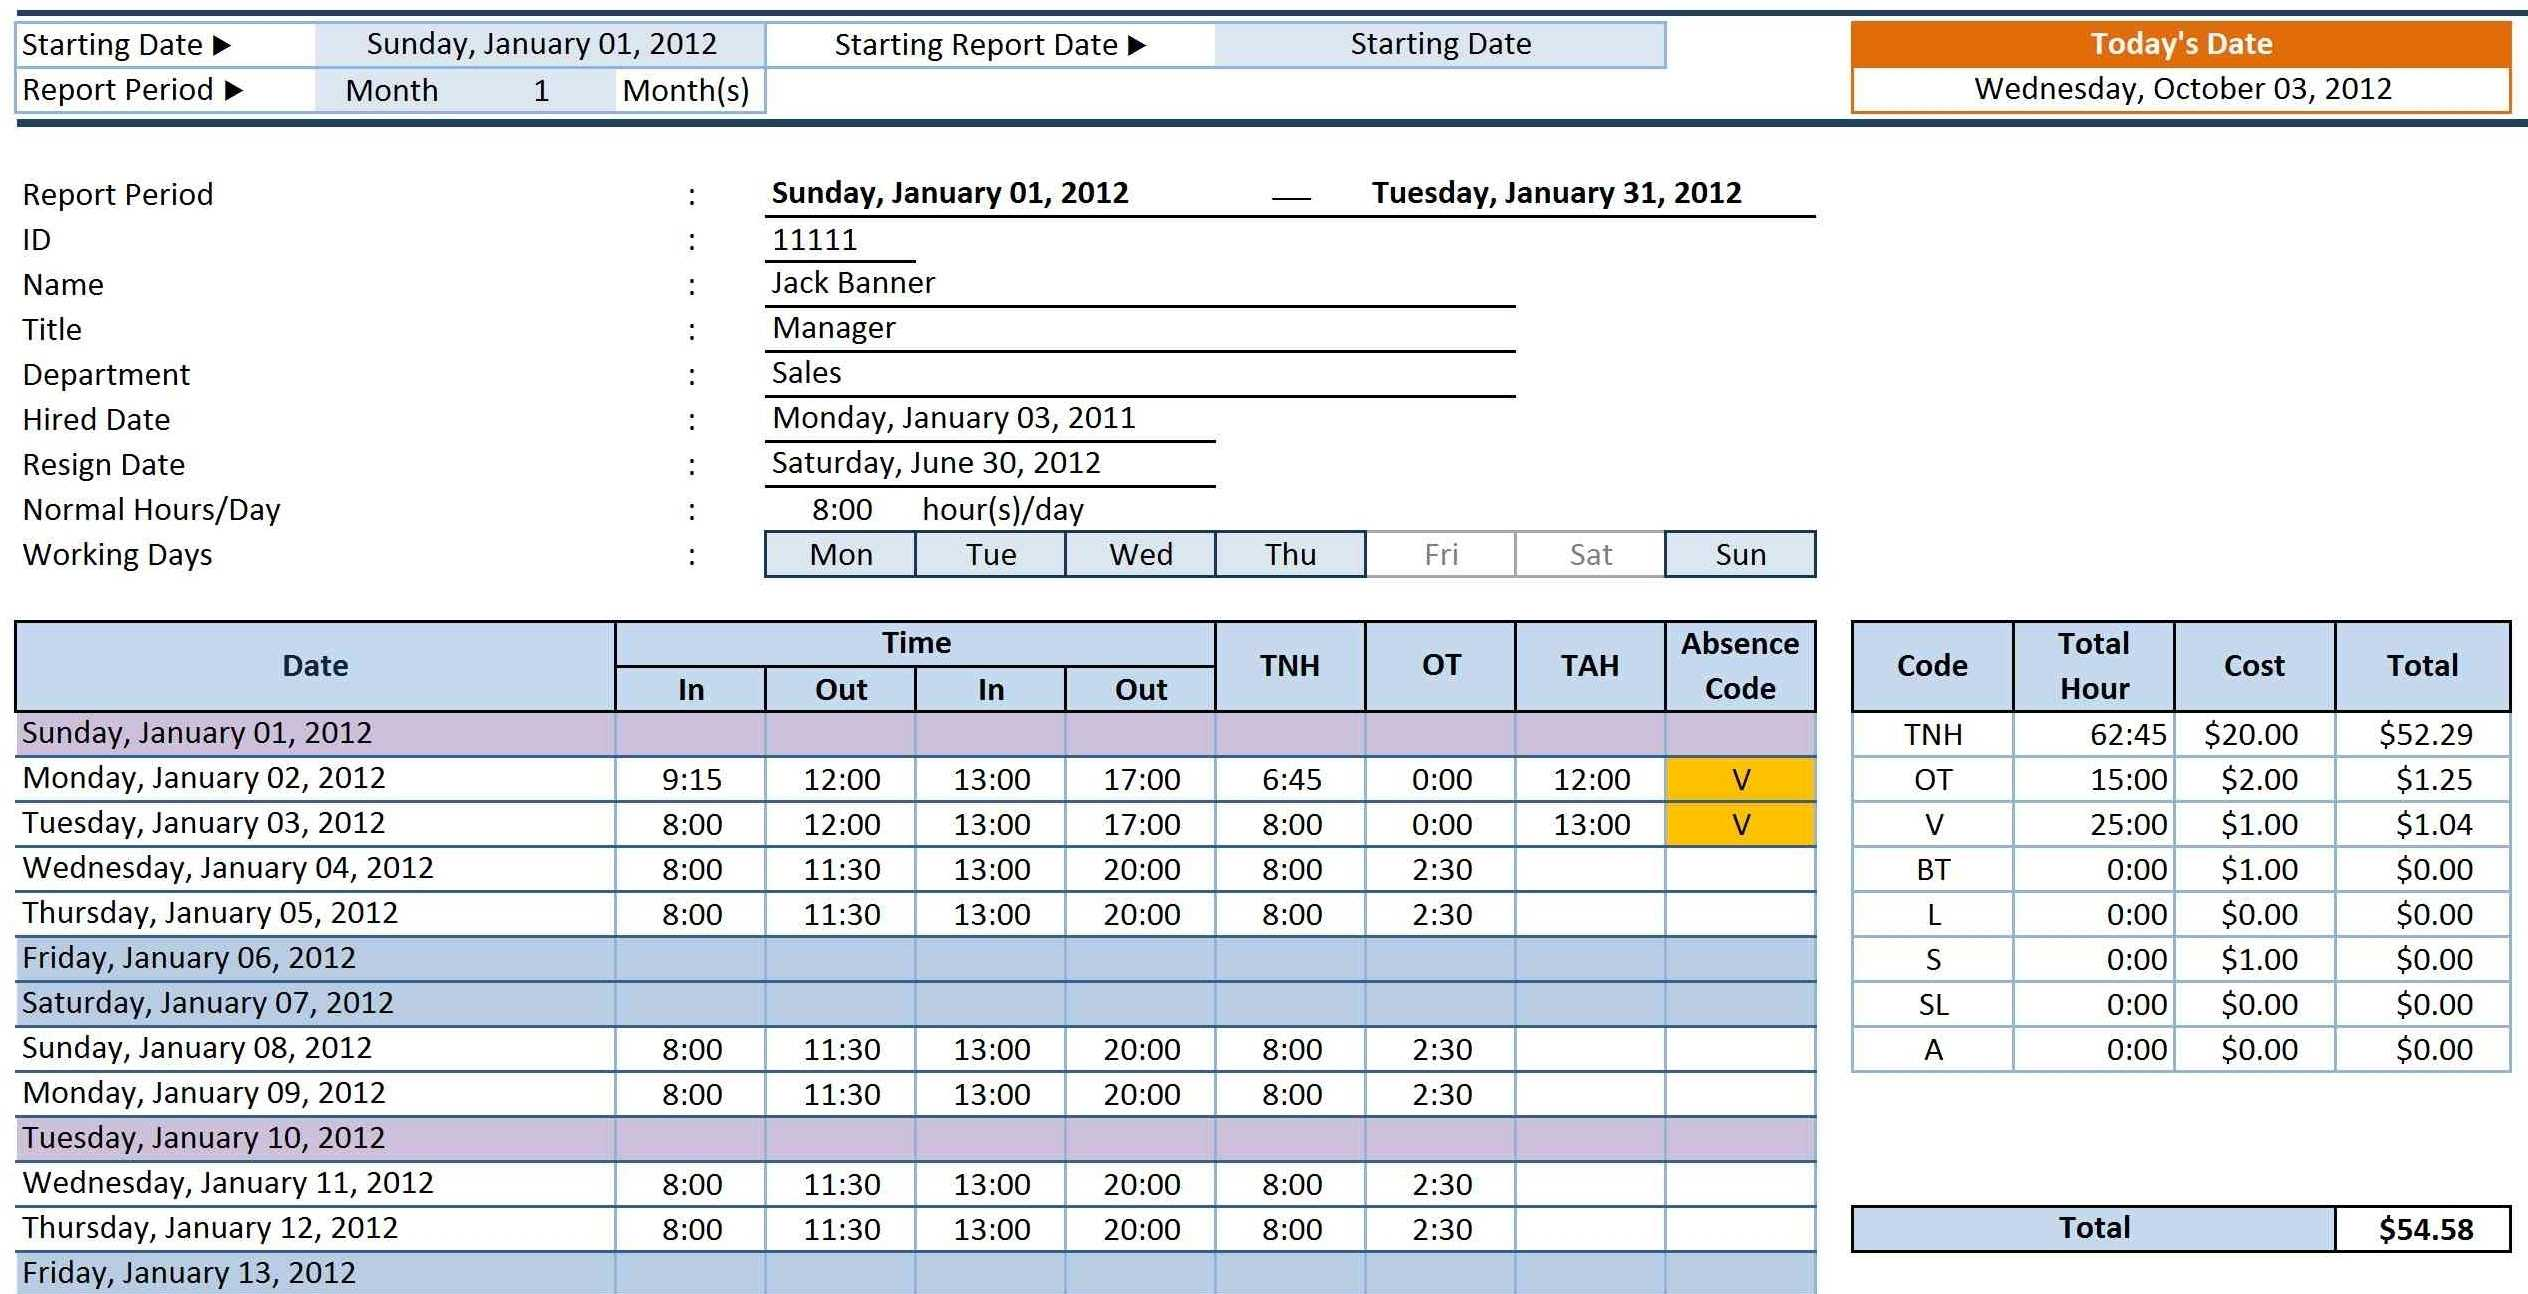 002 Free Excel Timesheet Template With Formulas Of Ideas Pertaining To Excel Timesheet Template With Formulas